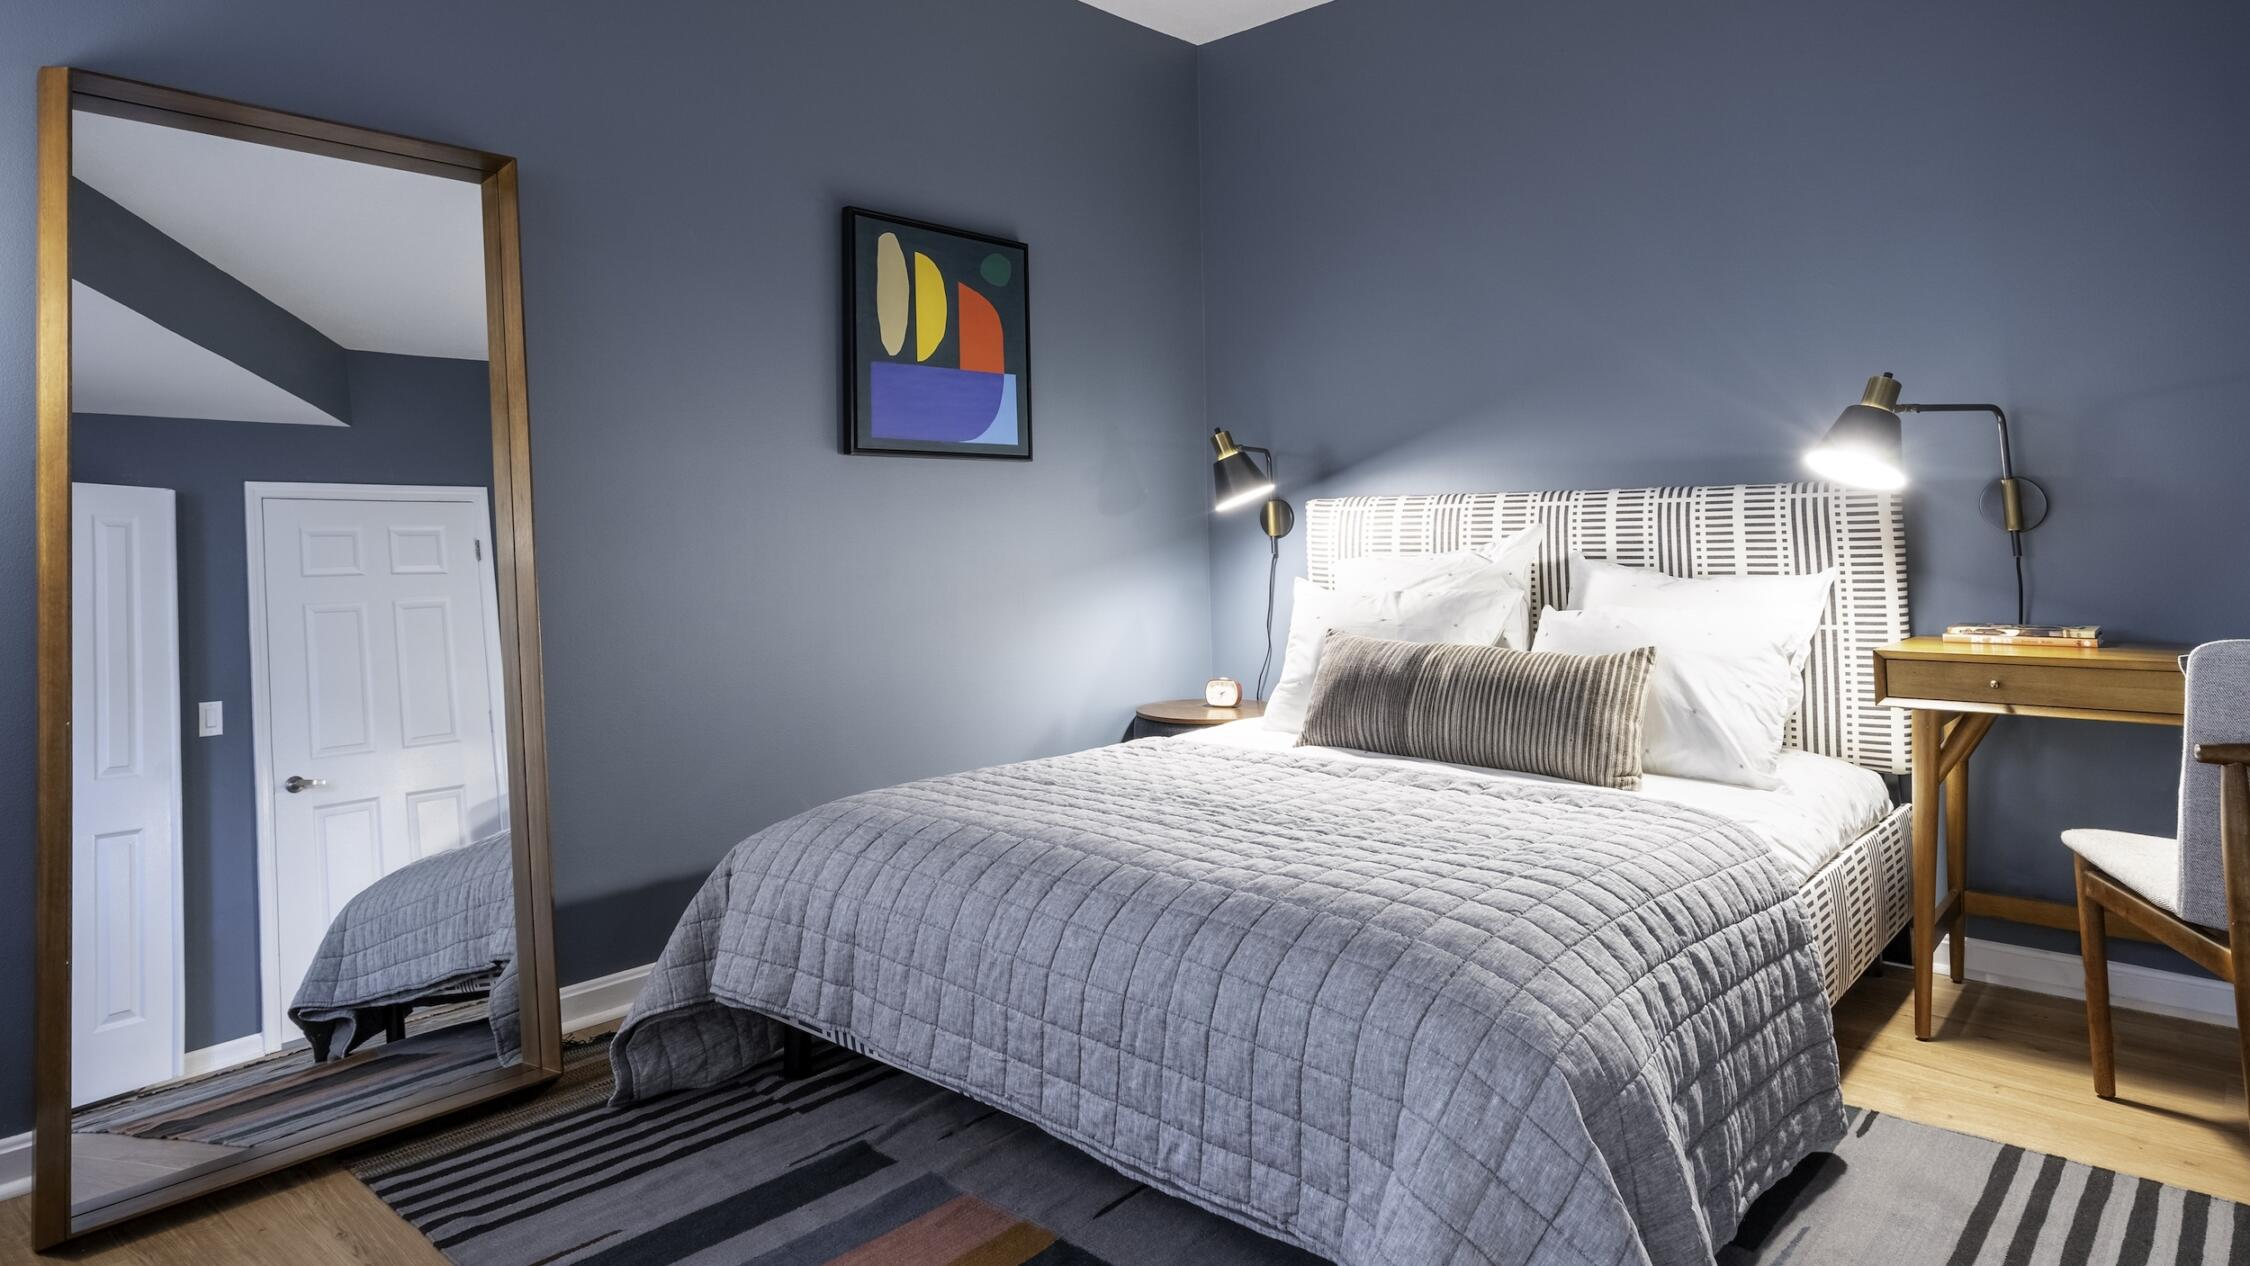 Bedroom of a model apartment at The Ellington with blue walls and a large bed